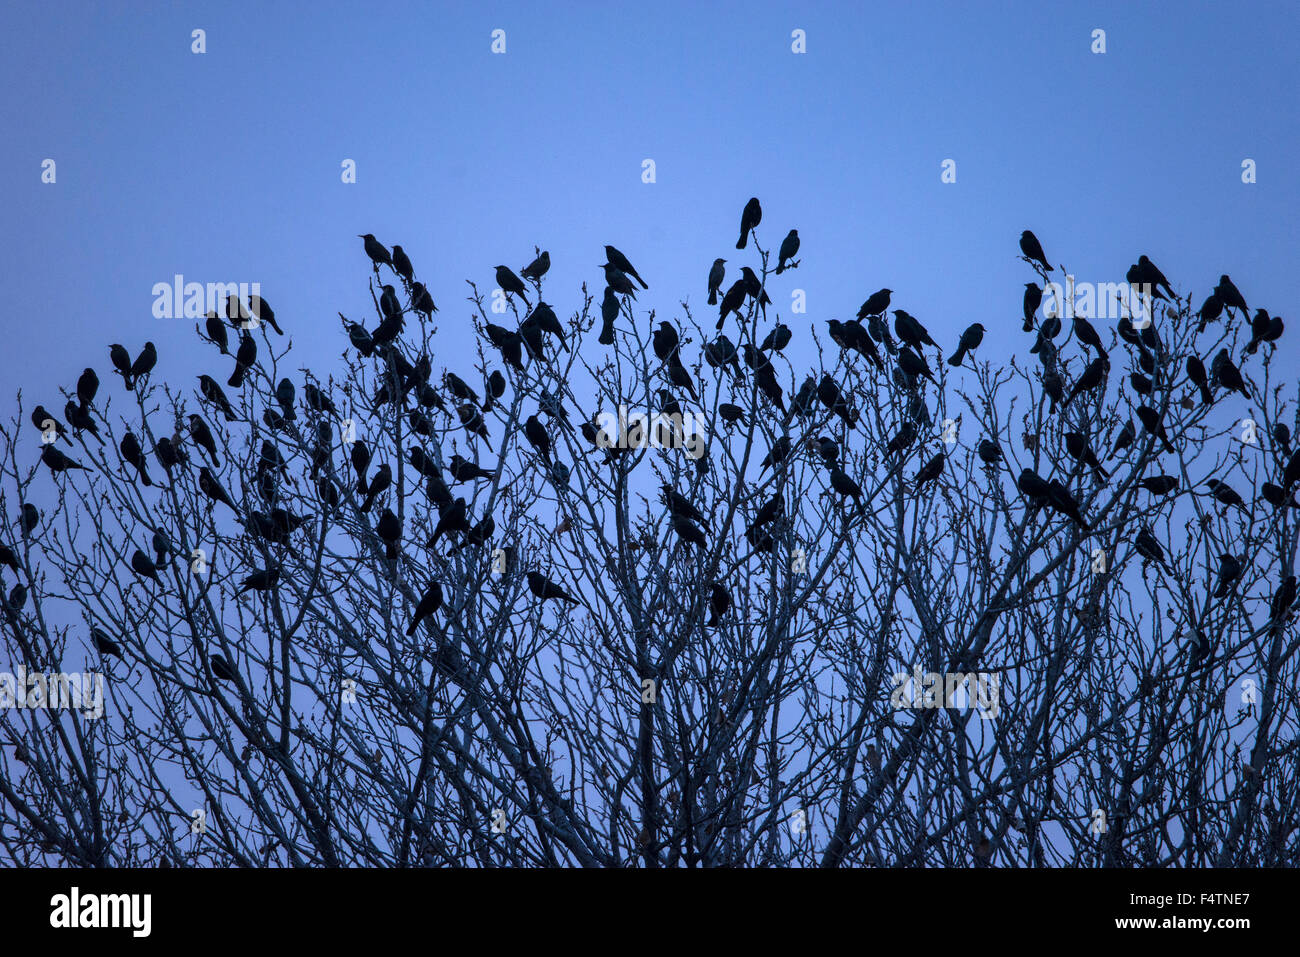 Merles, arbre, arbre, oiseau Photo Stock